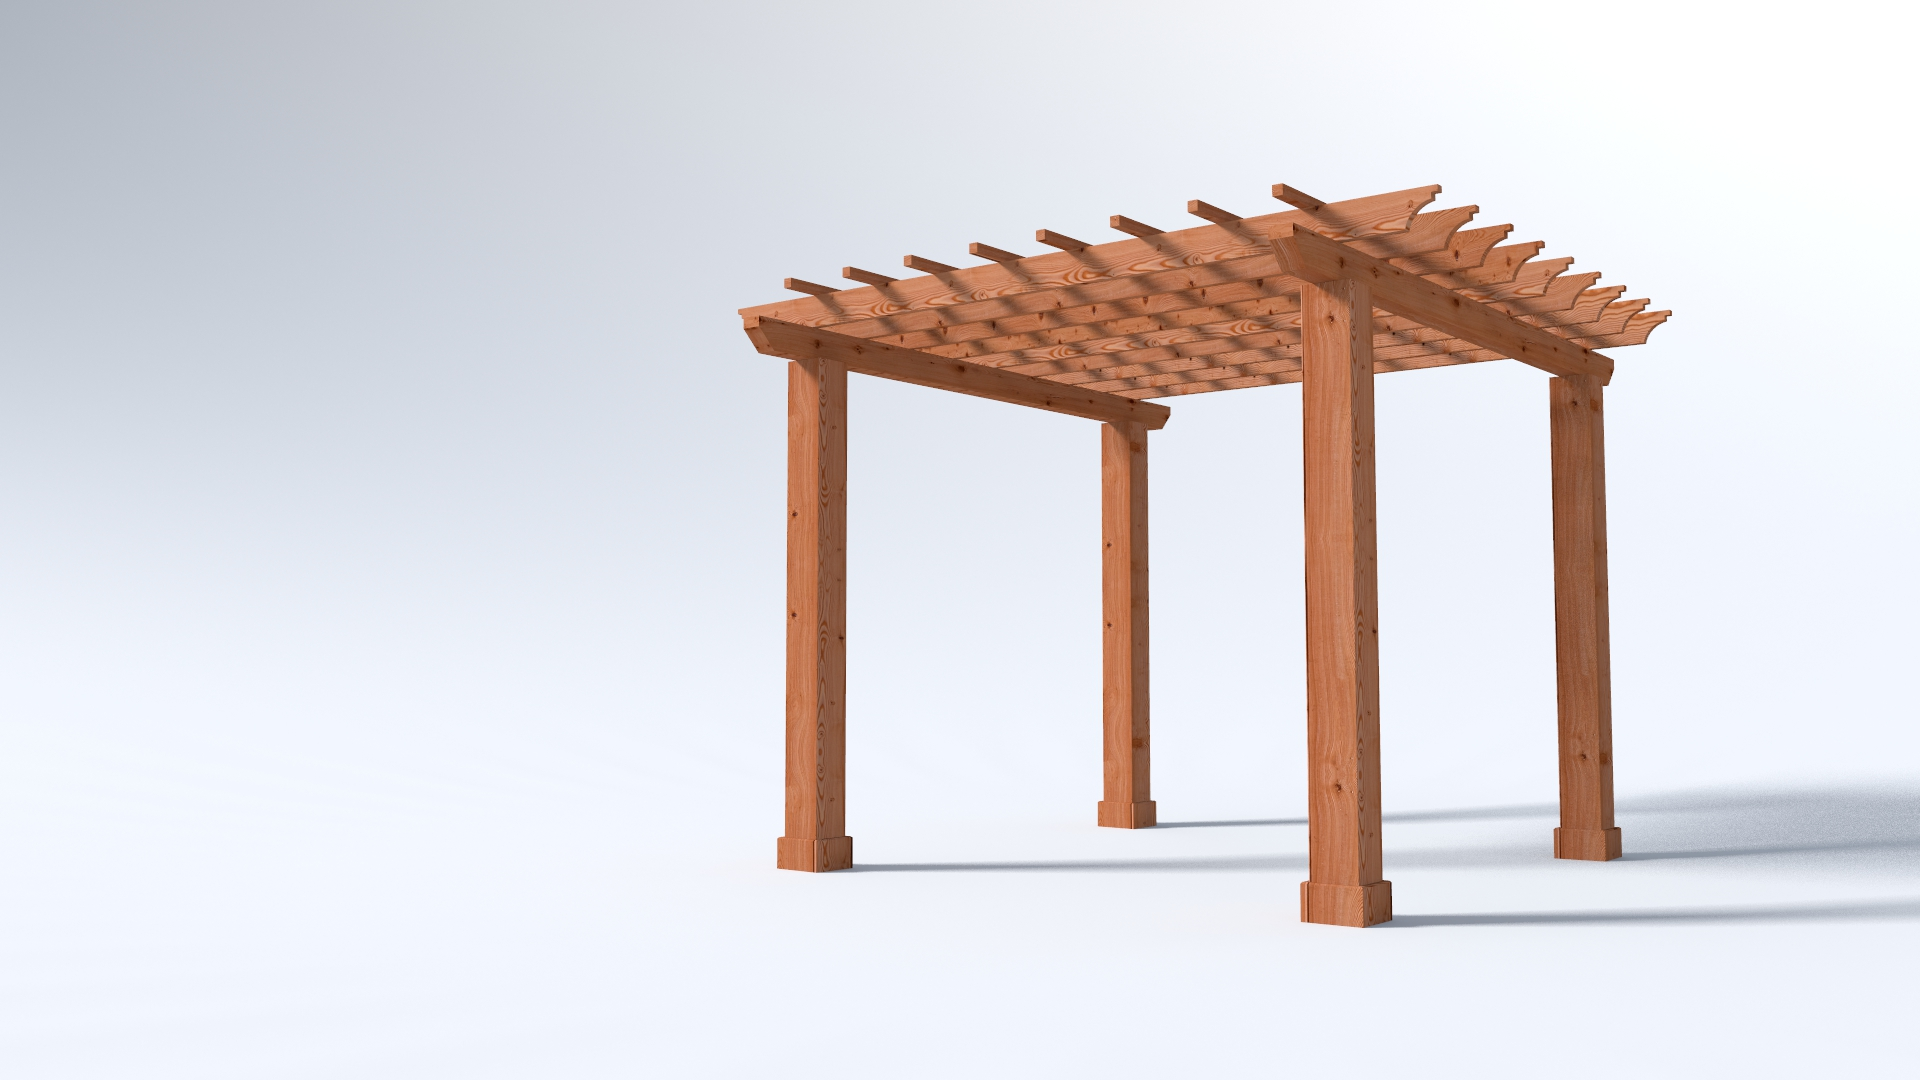 12x12 Garden Pergola - 4x Beams